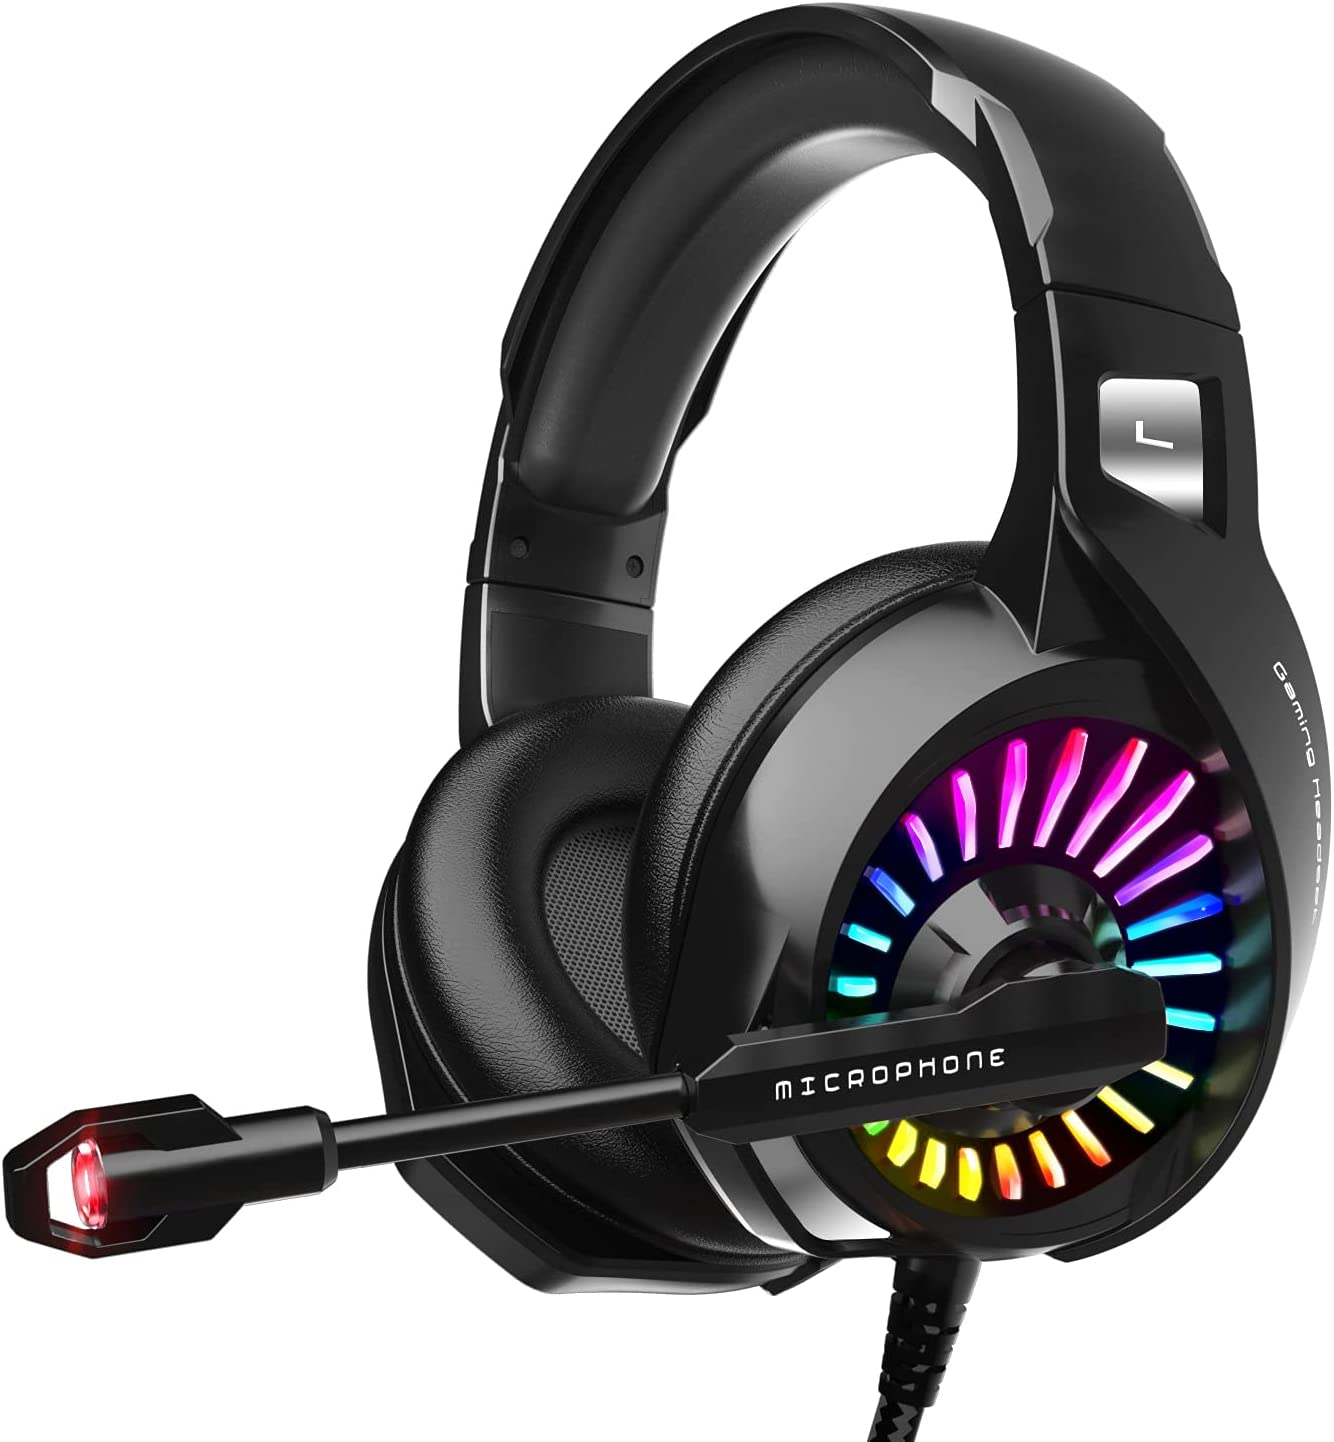 ZIUMIER Gaming Headset with Microphone, Compatible with PS4 PS5 Xbox One PC Laptop, Over-Ear Headphones with LED RGB Light, Noise Canceling Mic, 7.1 Stereo Surround Sound